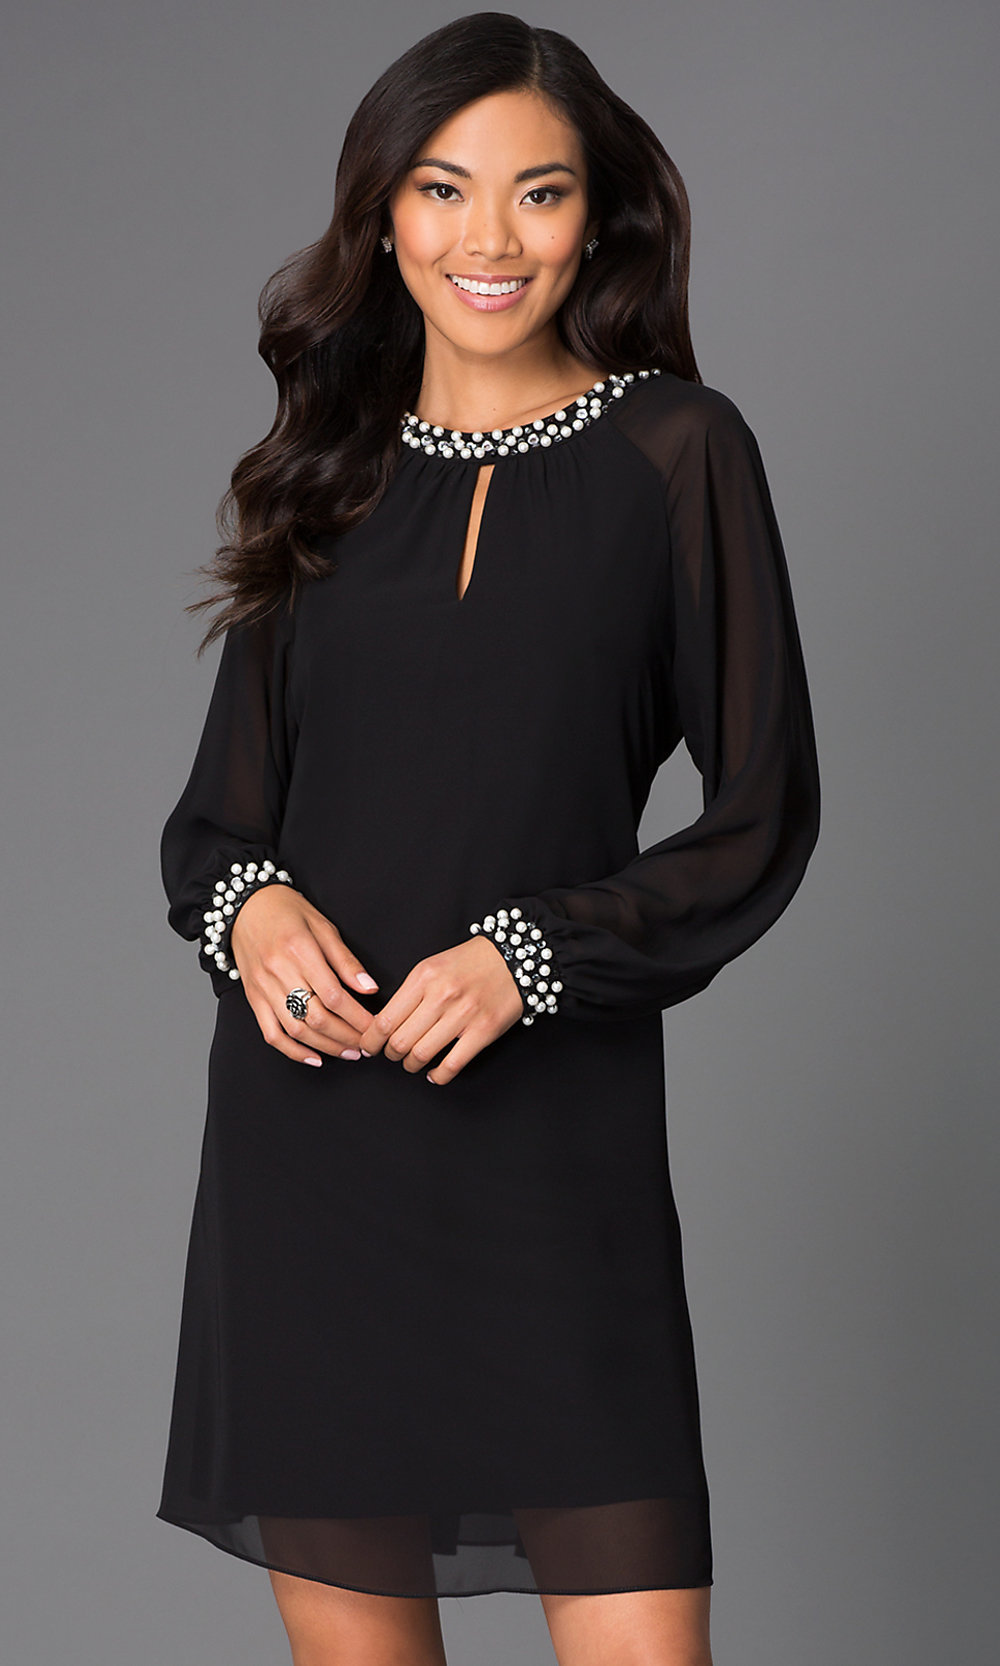 Formal dress long sleeve